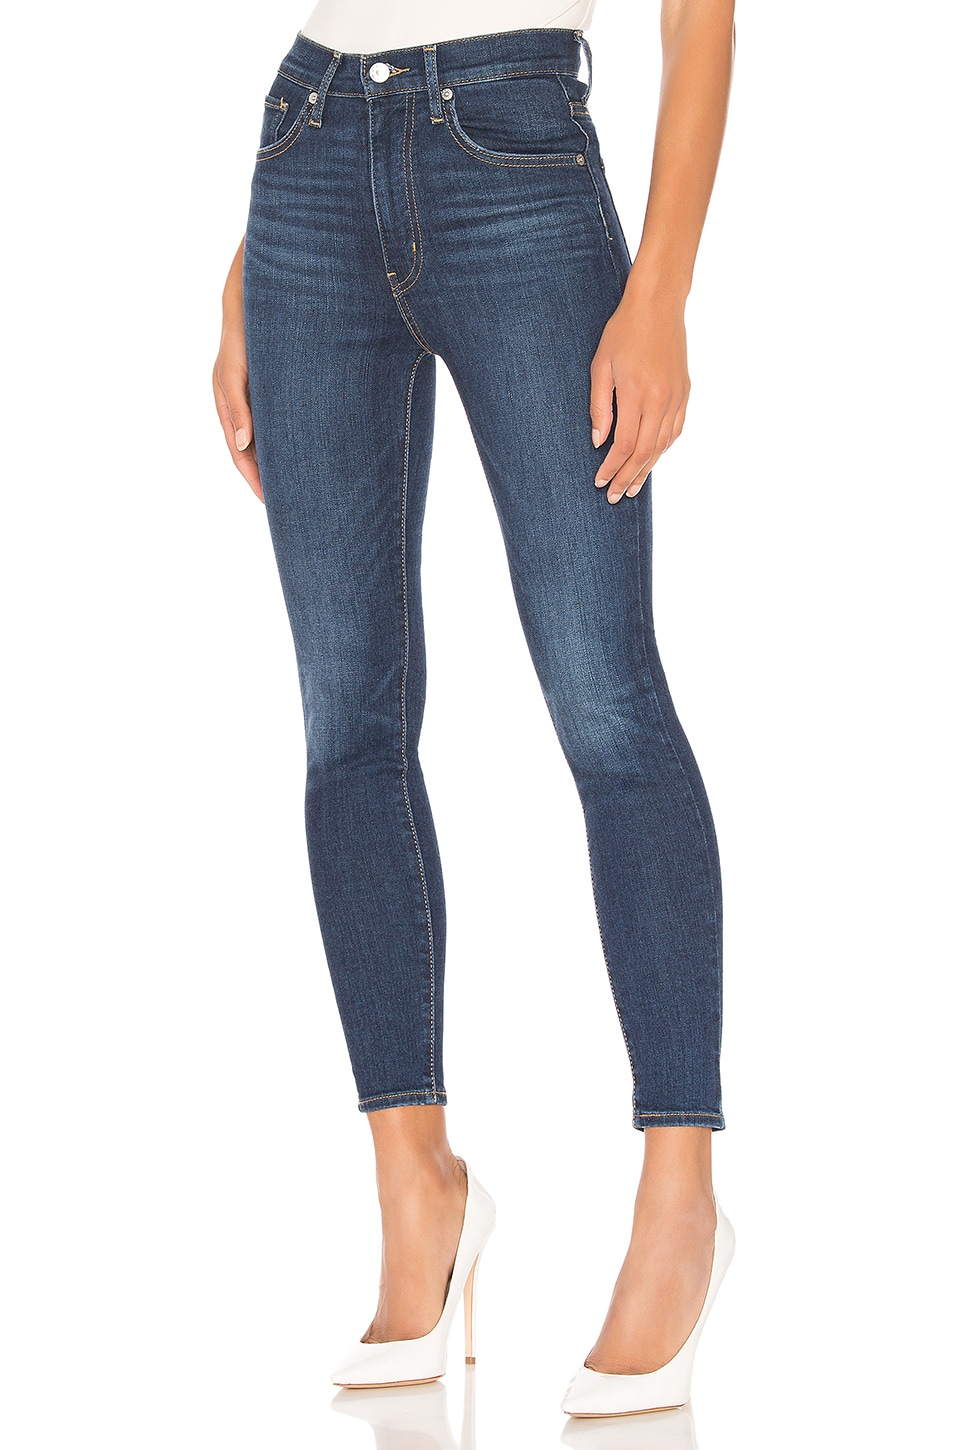 LEVI'S JEAN SKINNY MILE HIGH